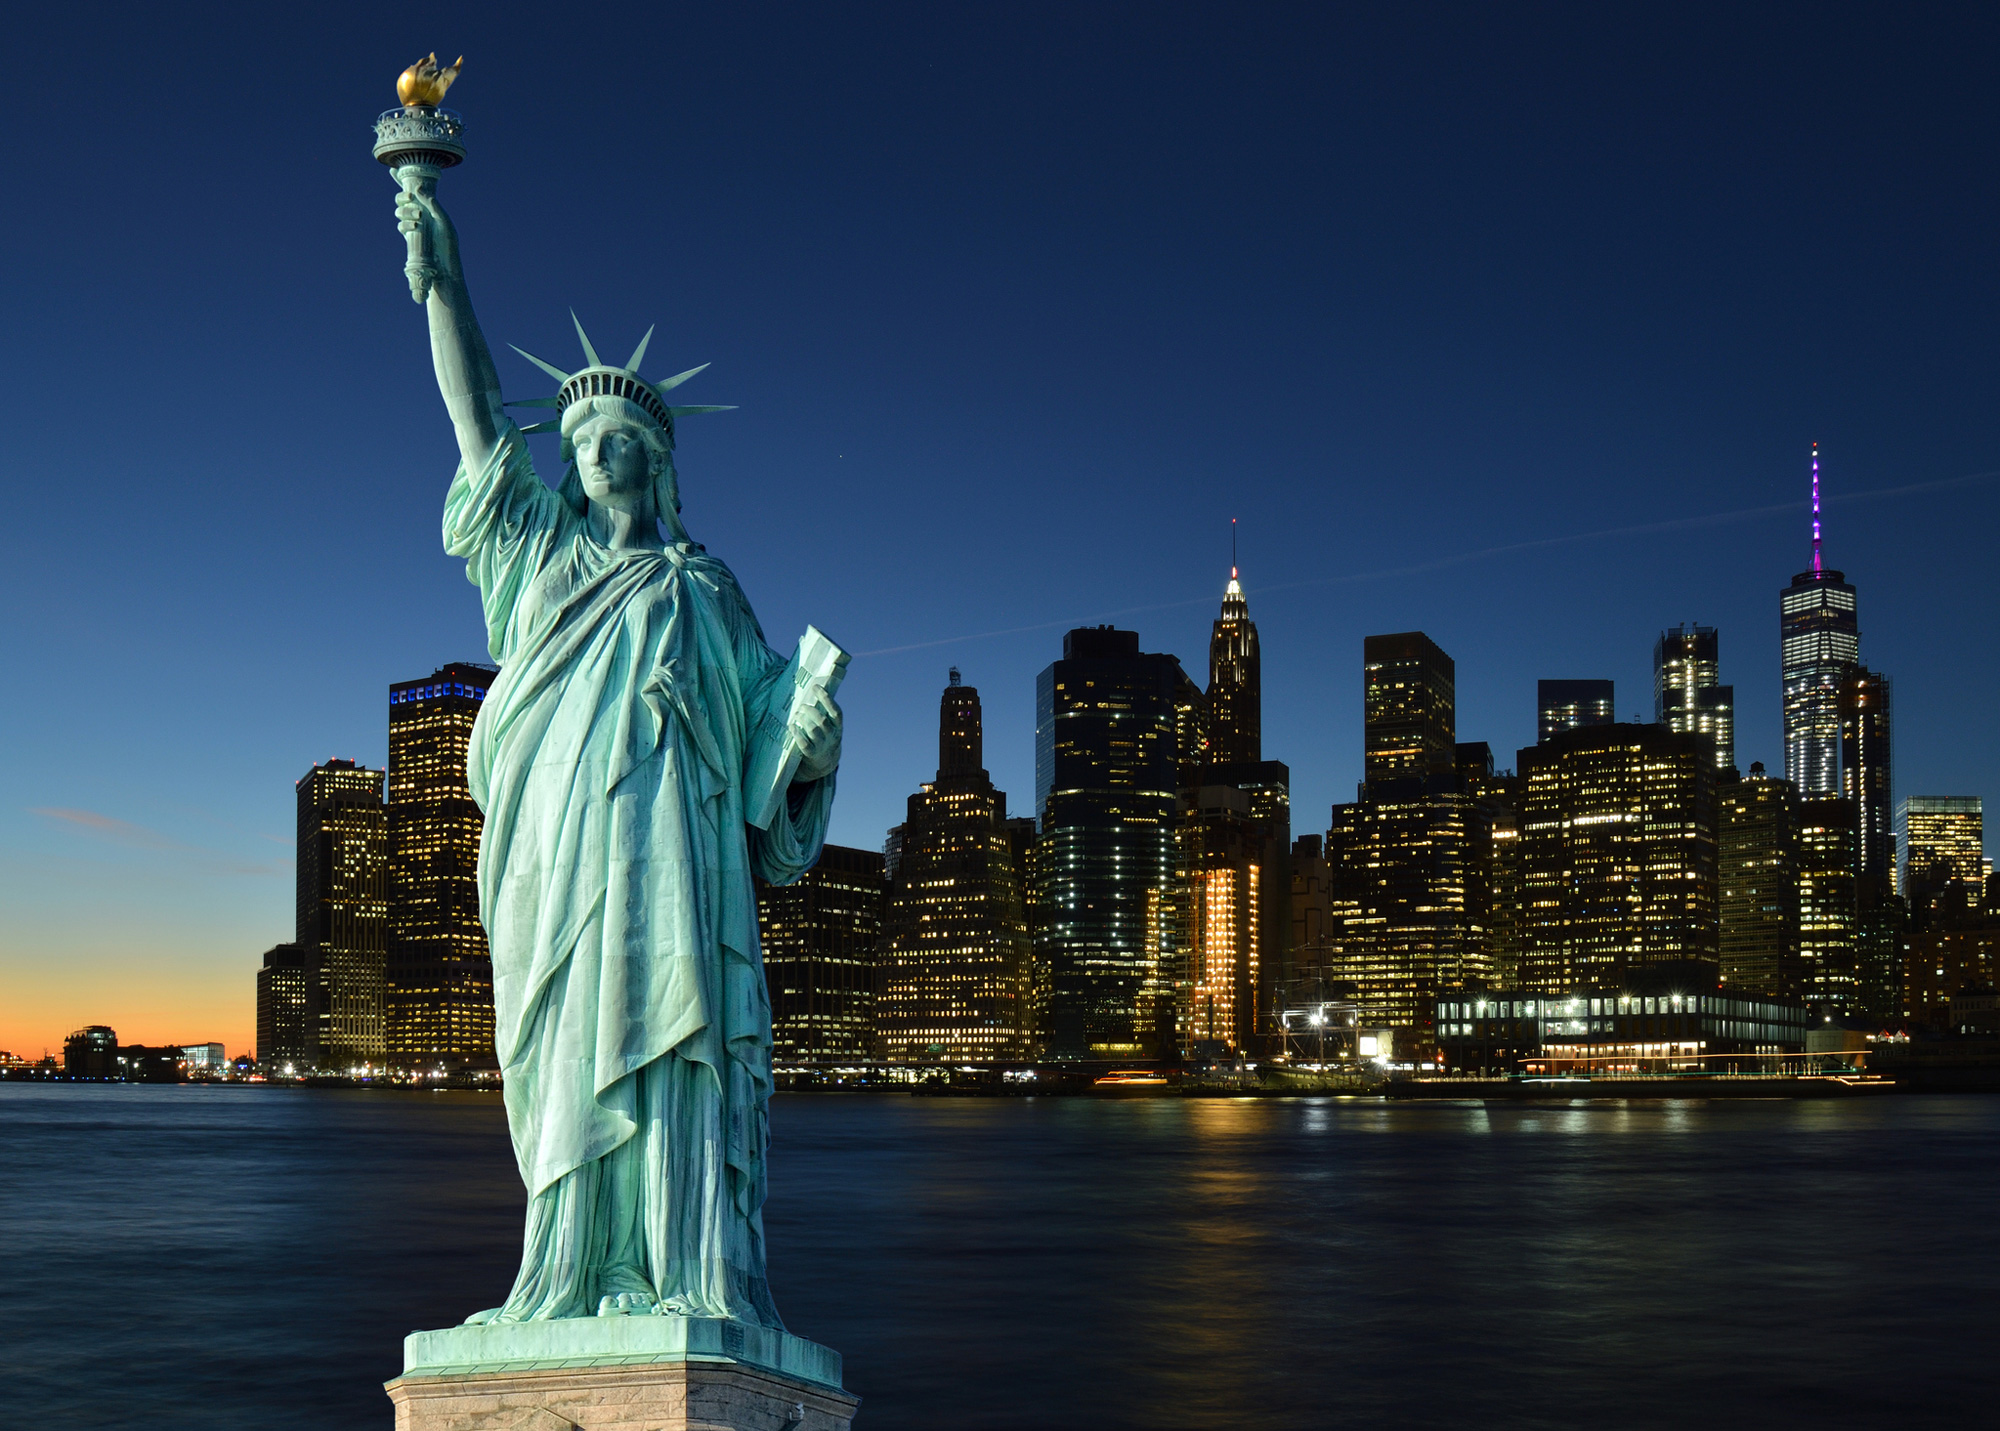 The American horizon has been dominated, since 1886, by the Statue of Liberty, standing at an impressive 151 feet.